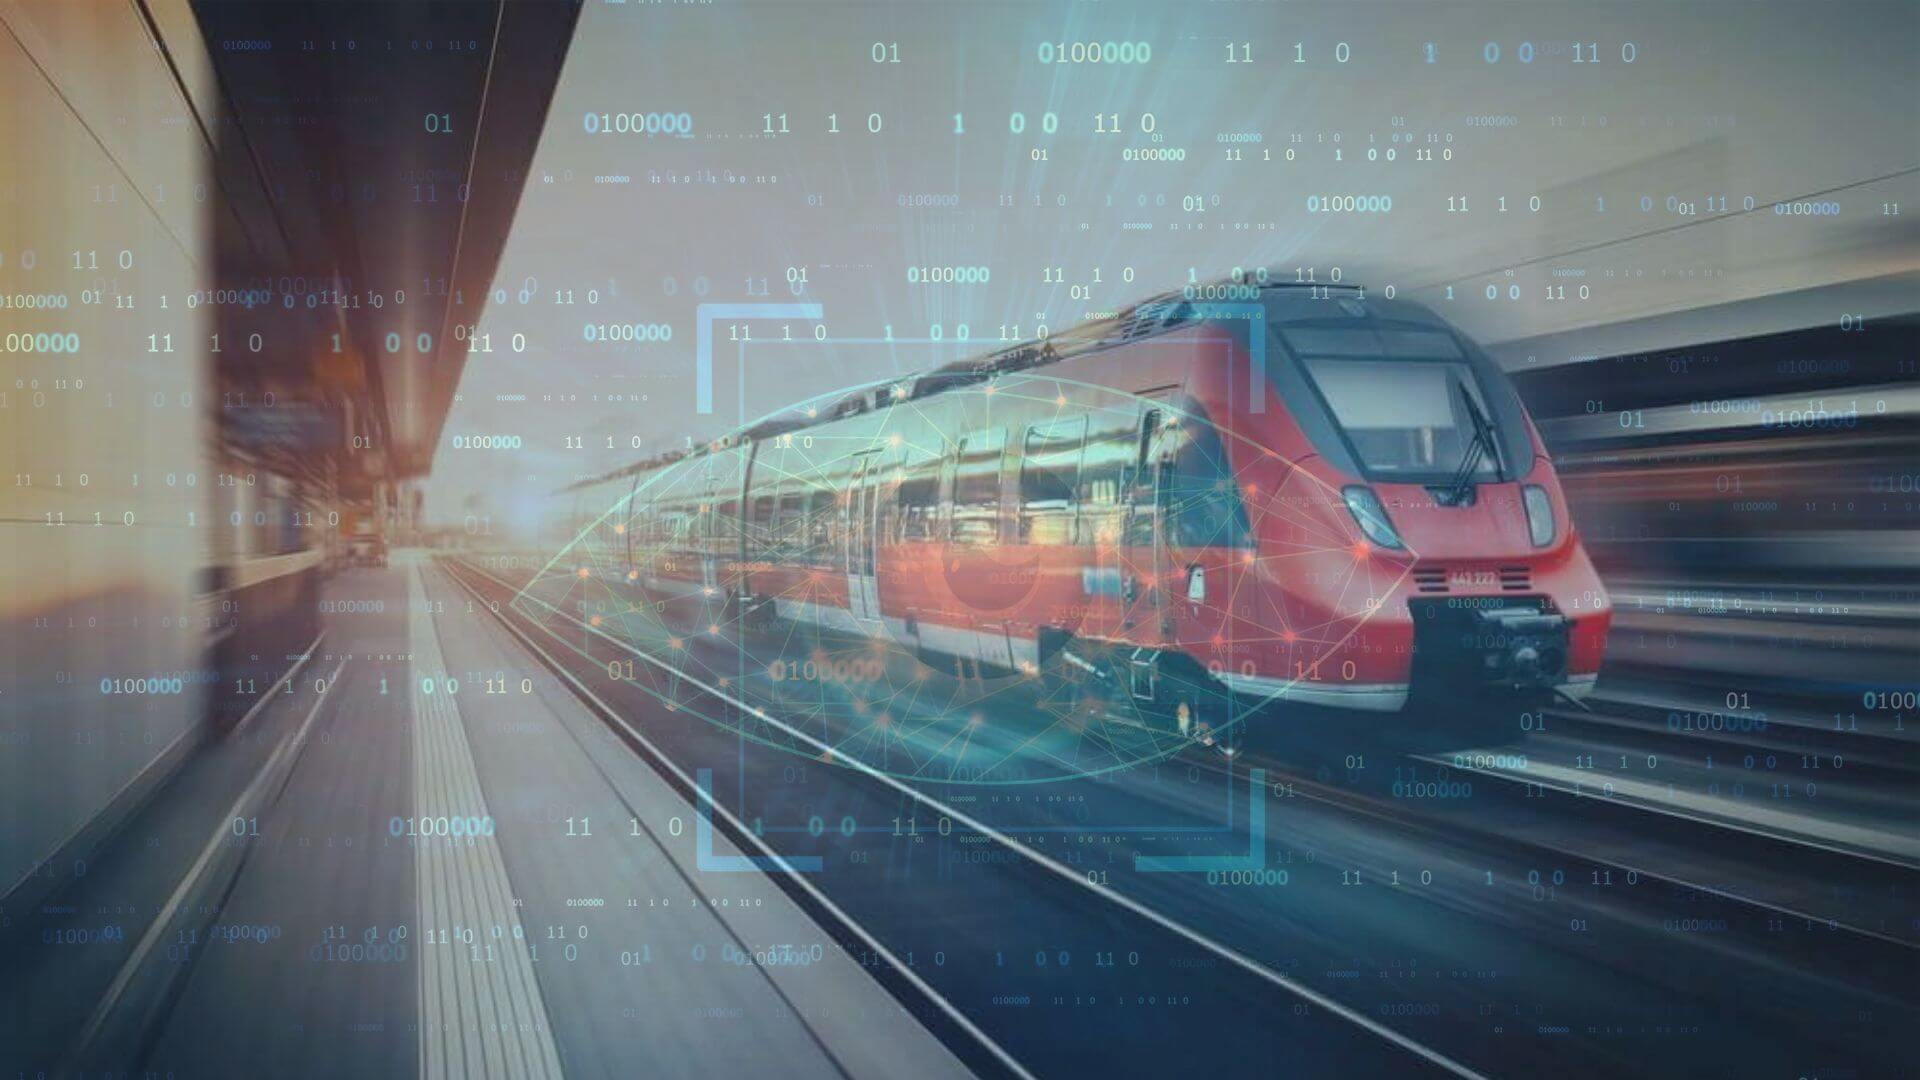 Pilot: Computer Vision software trialed to measure passenger flow on regular train routes in Lithuania